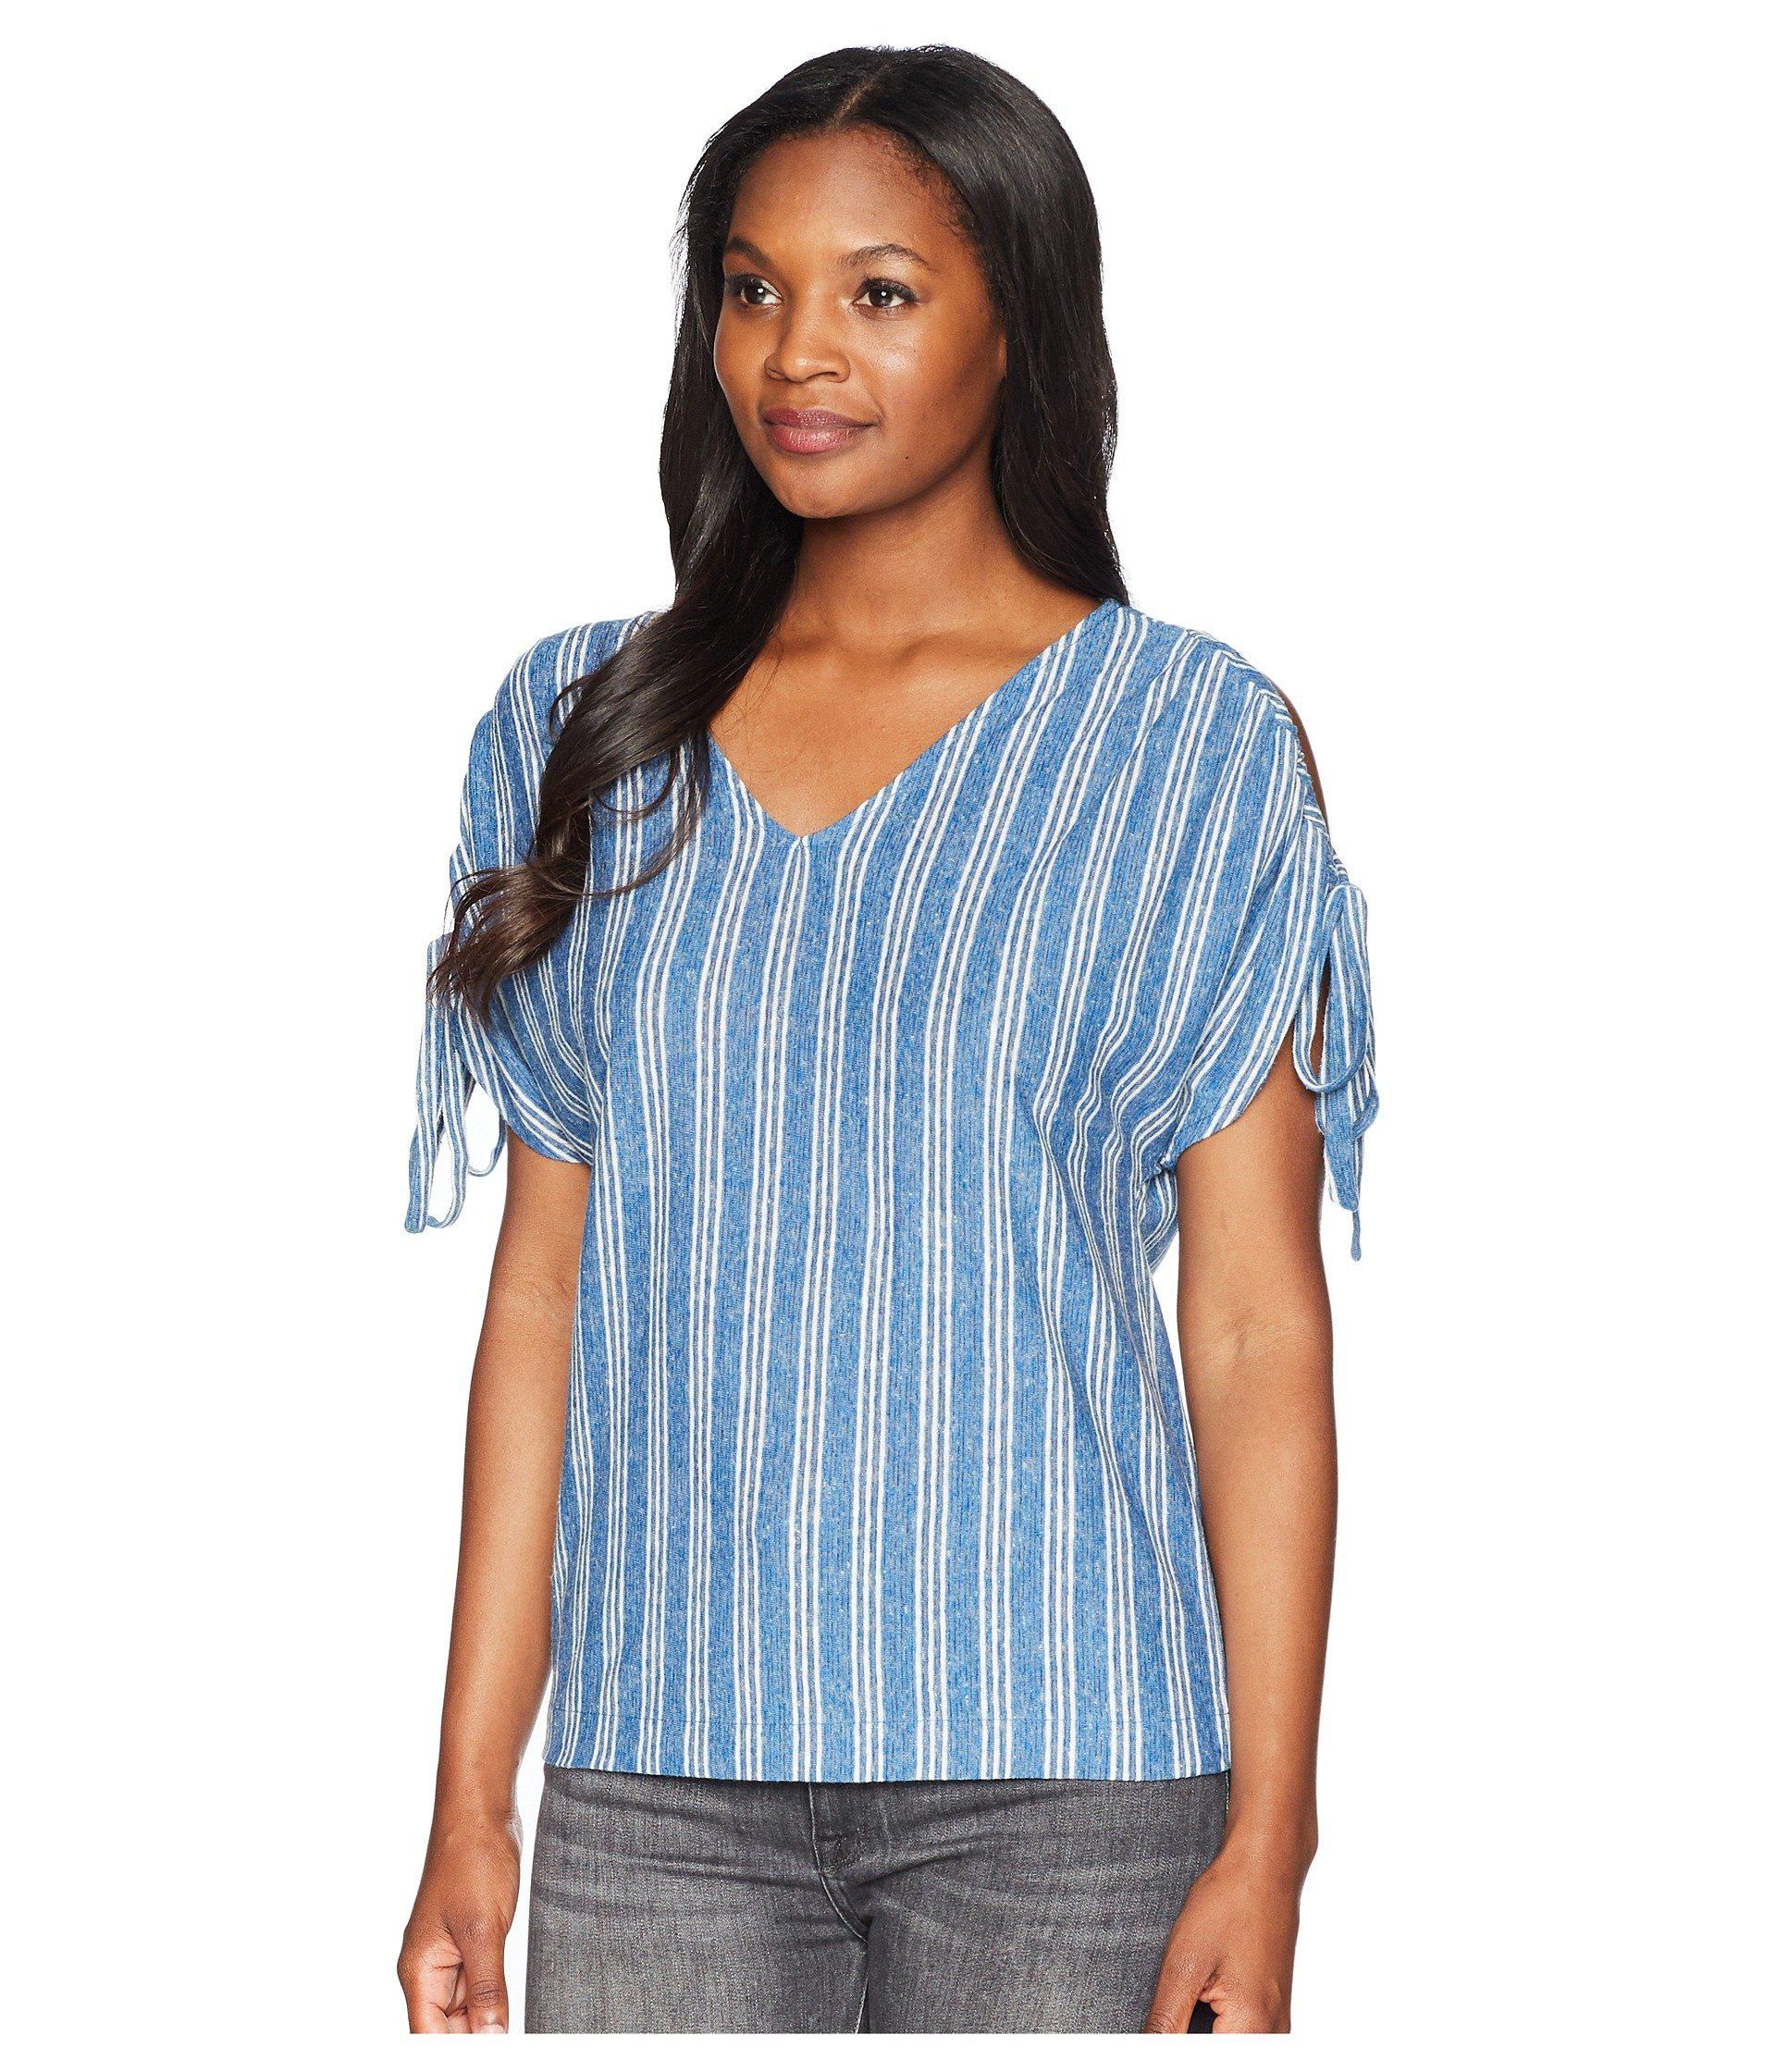 240fd3afad548 Lyst - Lucky Brand Stripe Tie Shoulder Top in Blue - Save 25%